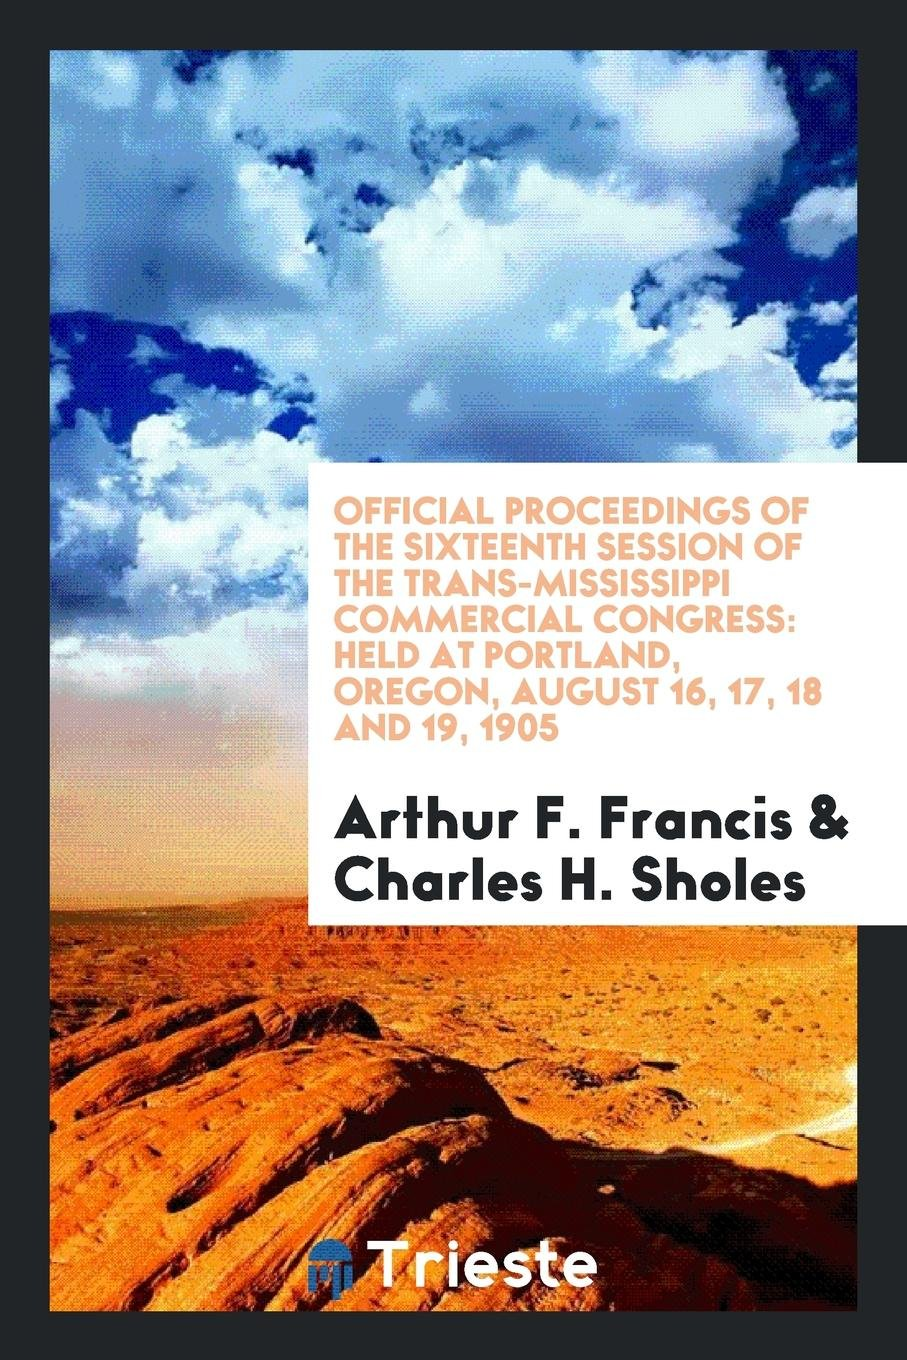 Official proceedings of the sixteenth session of the Trans-Mississippi Commercial Congress: held at Portland, Oregon, August 16, 17, 18 and 19, 1905 ebook